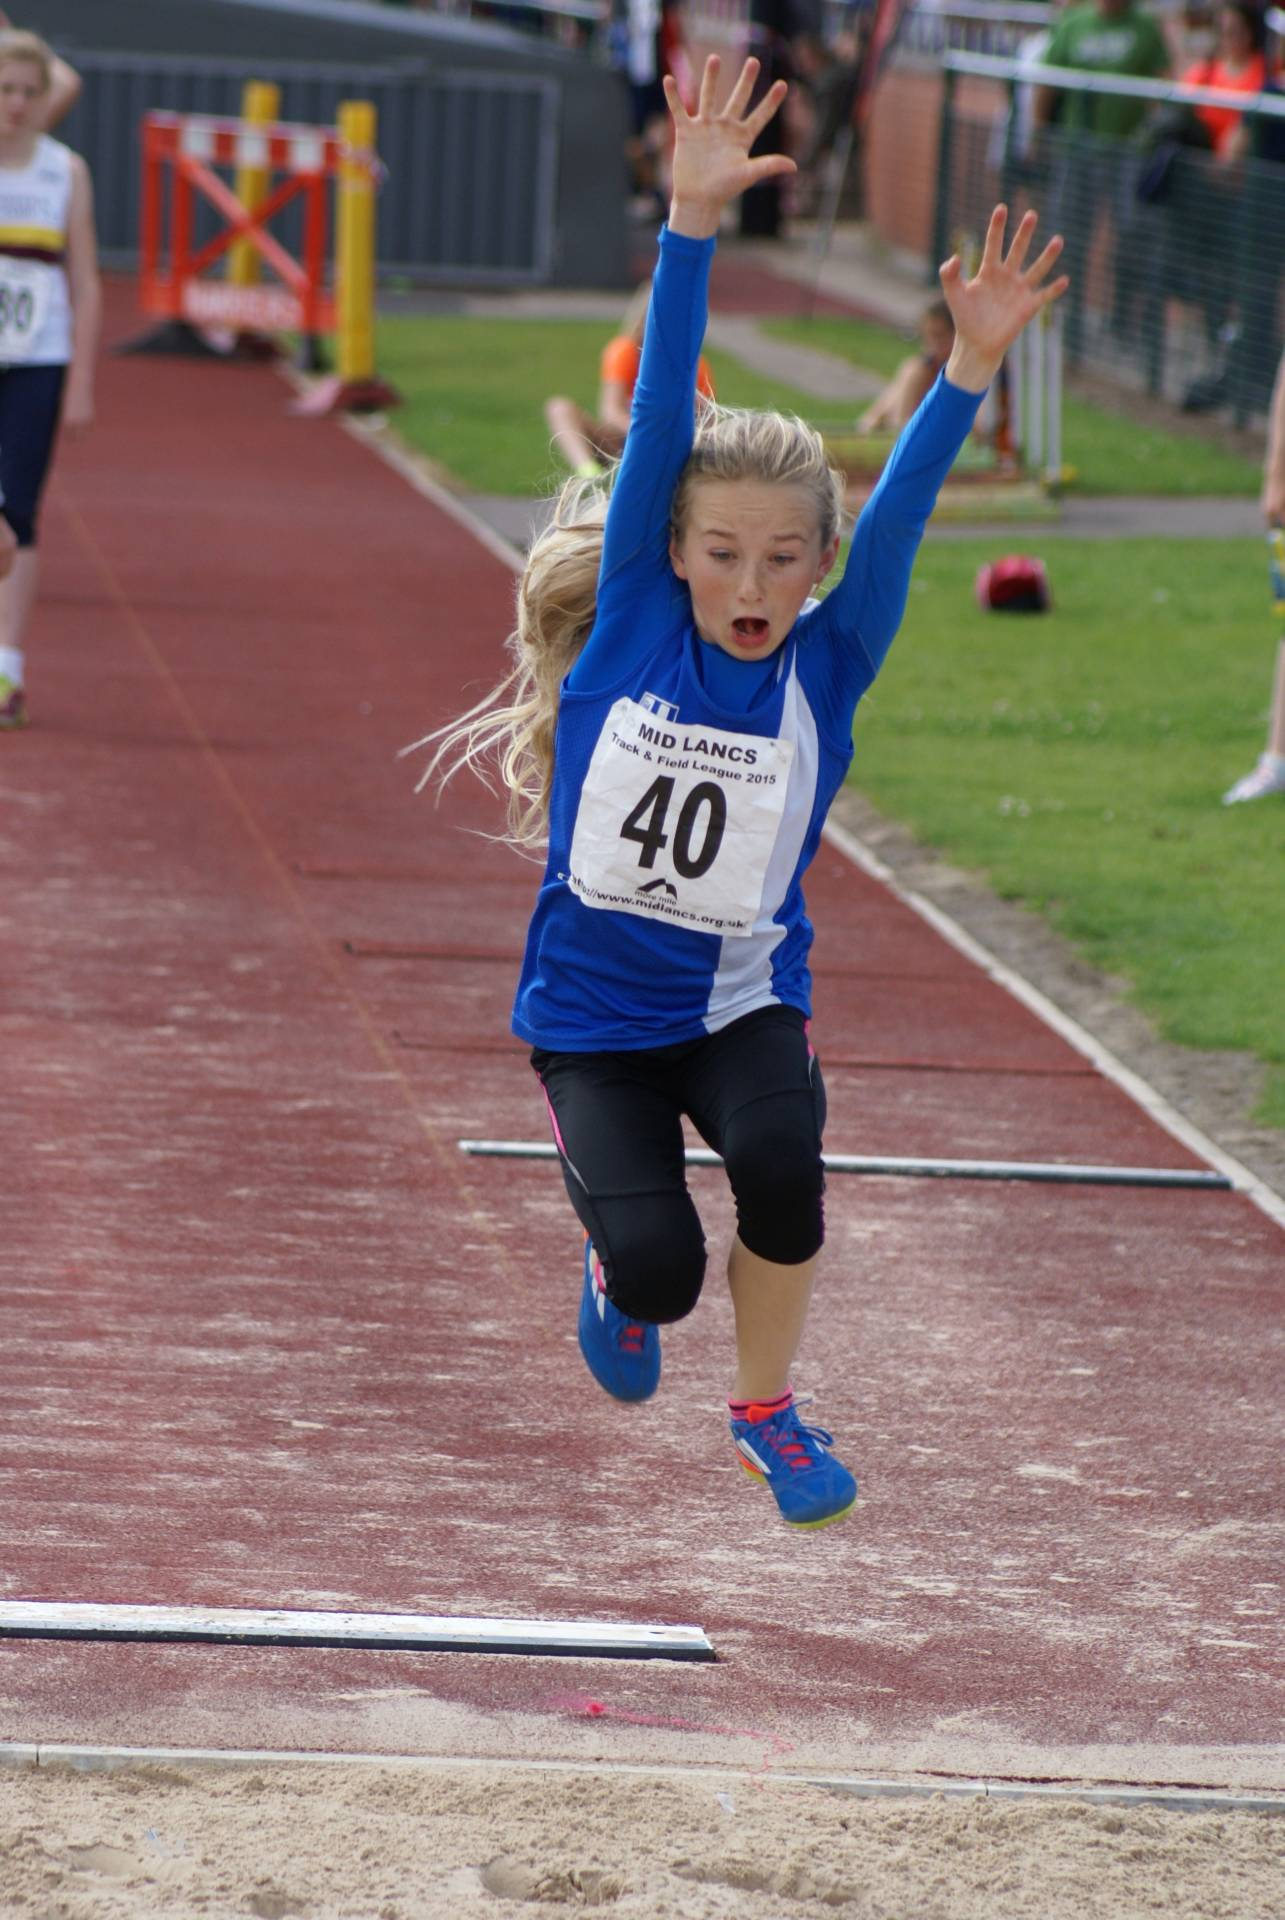 Mid Lancs T & F League at Leigh & Harriers youngsters still setting PB's